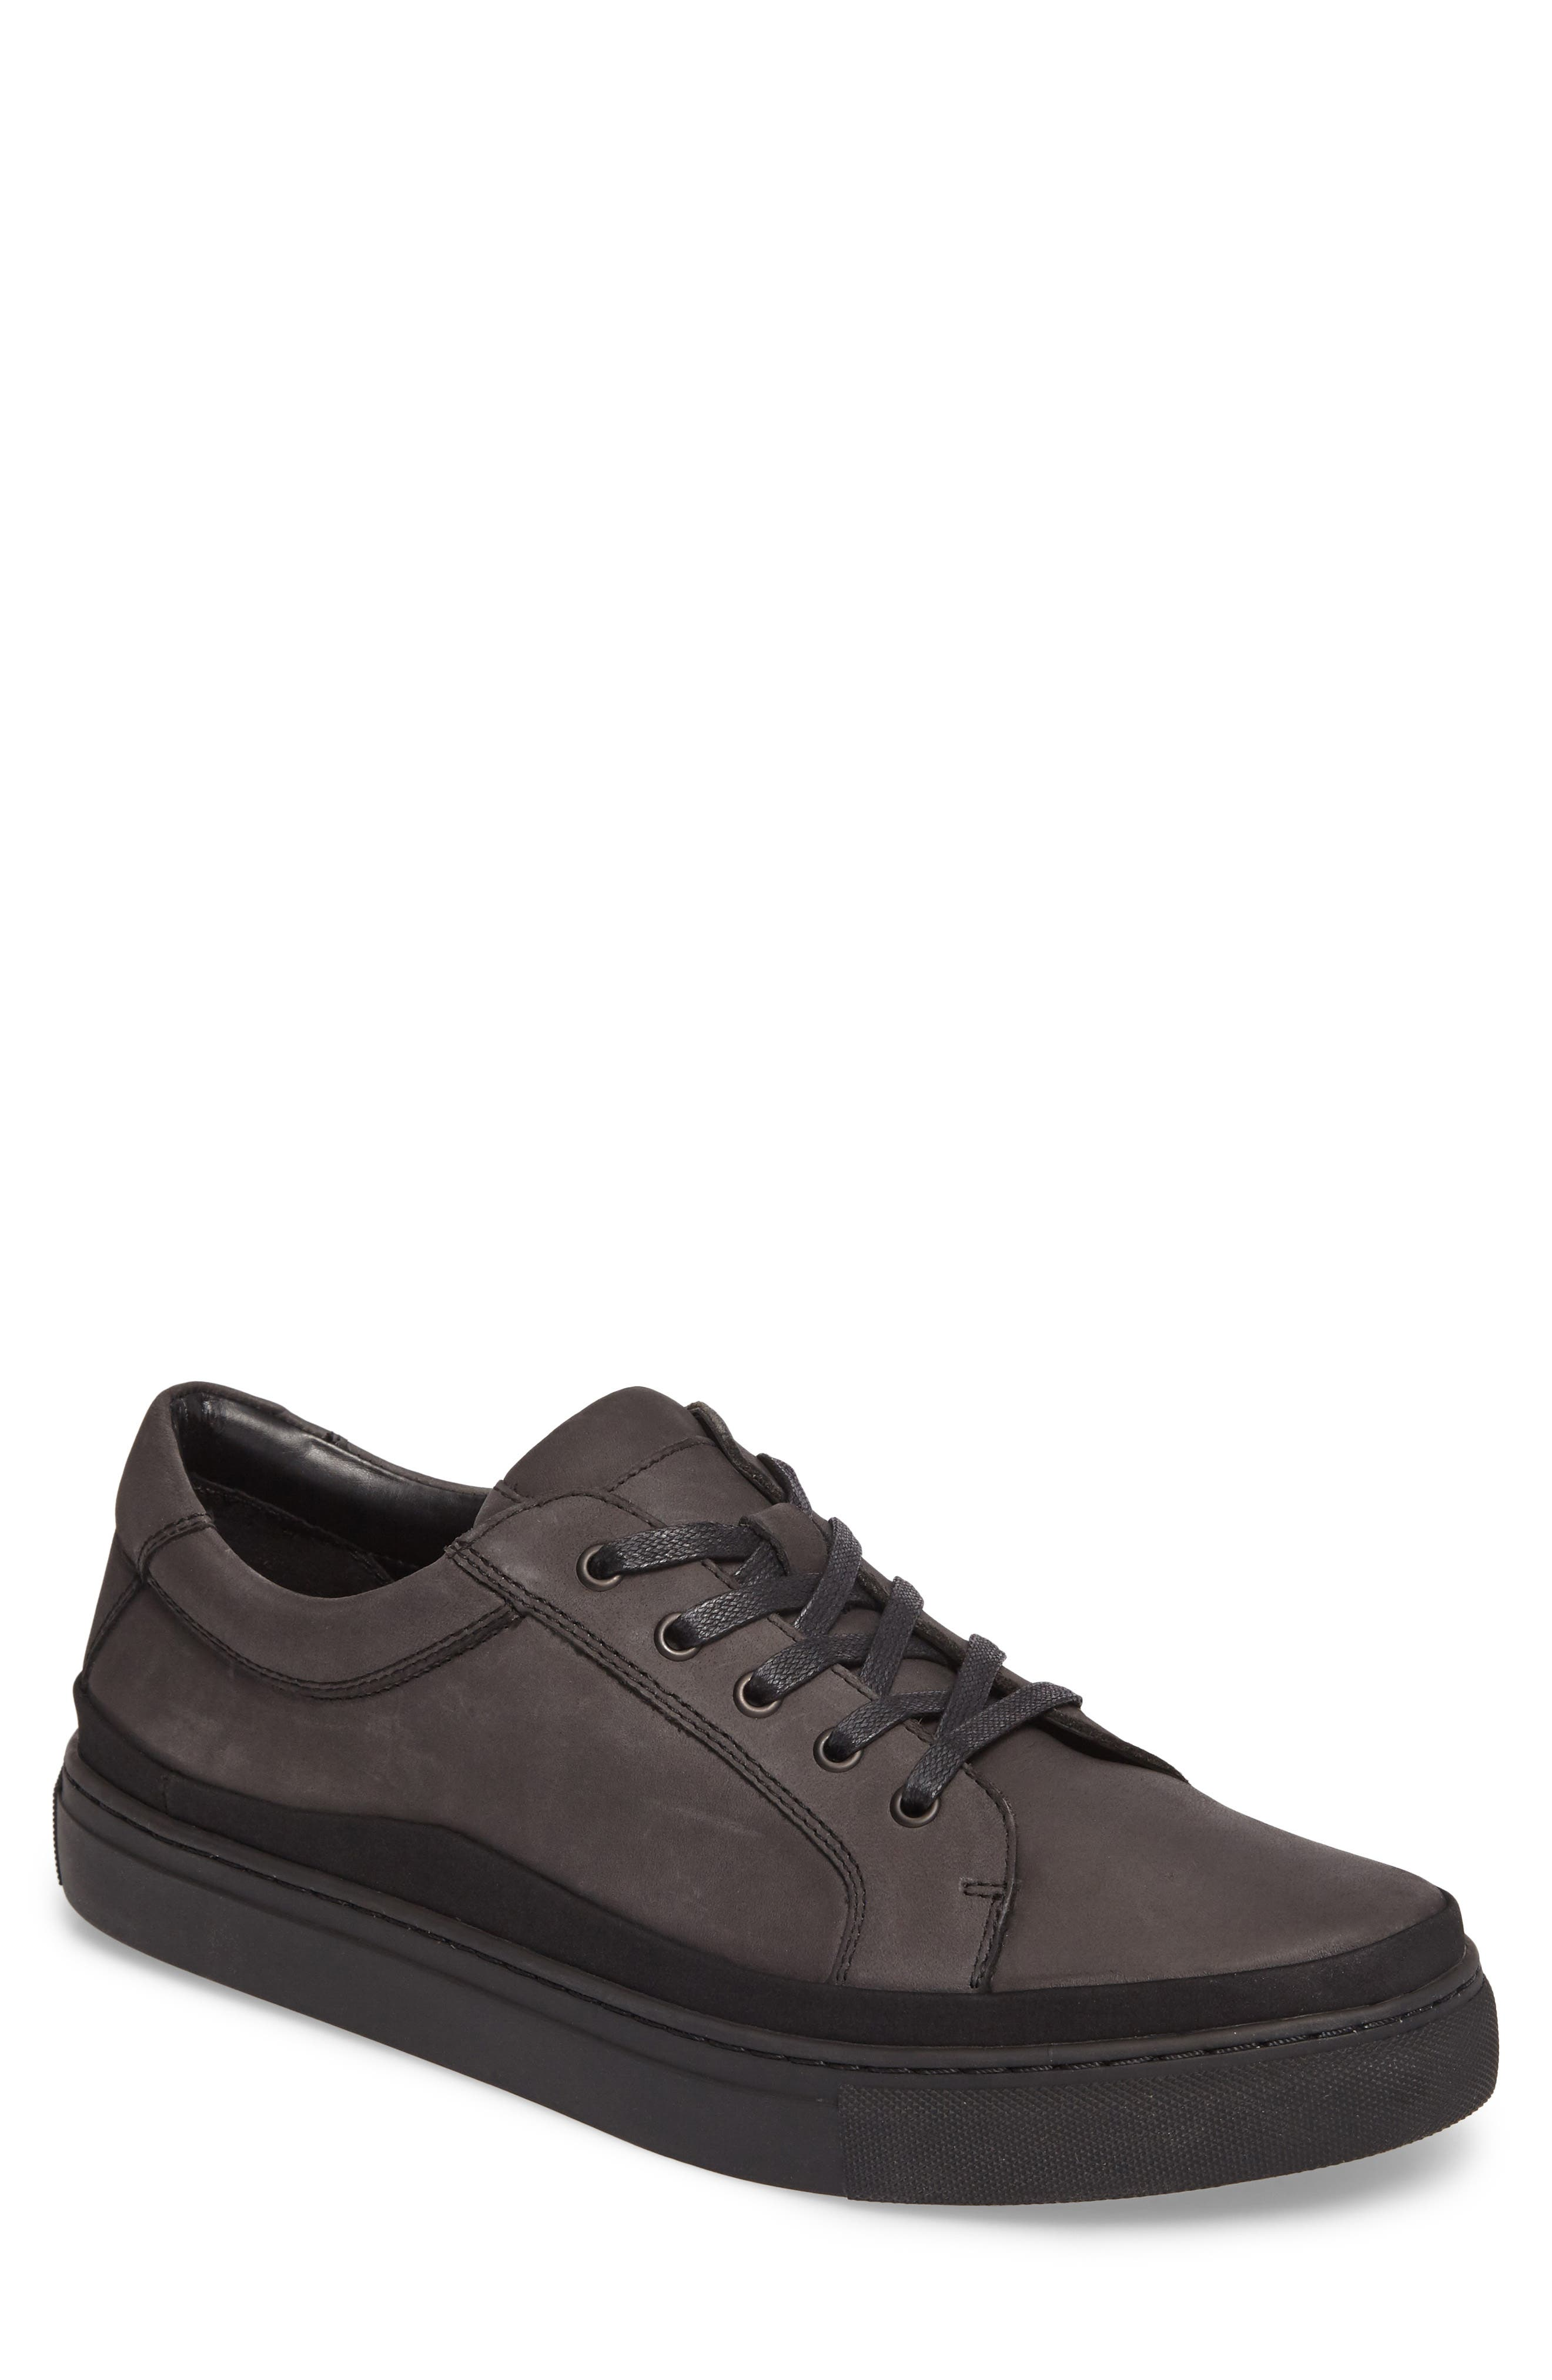 Reaction Kenneth Cole 20777 Low Top Sneaker (Men)